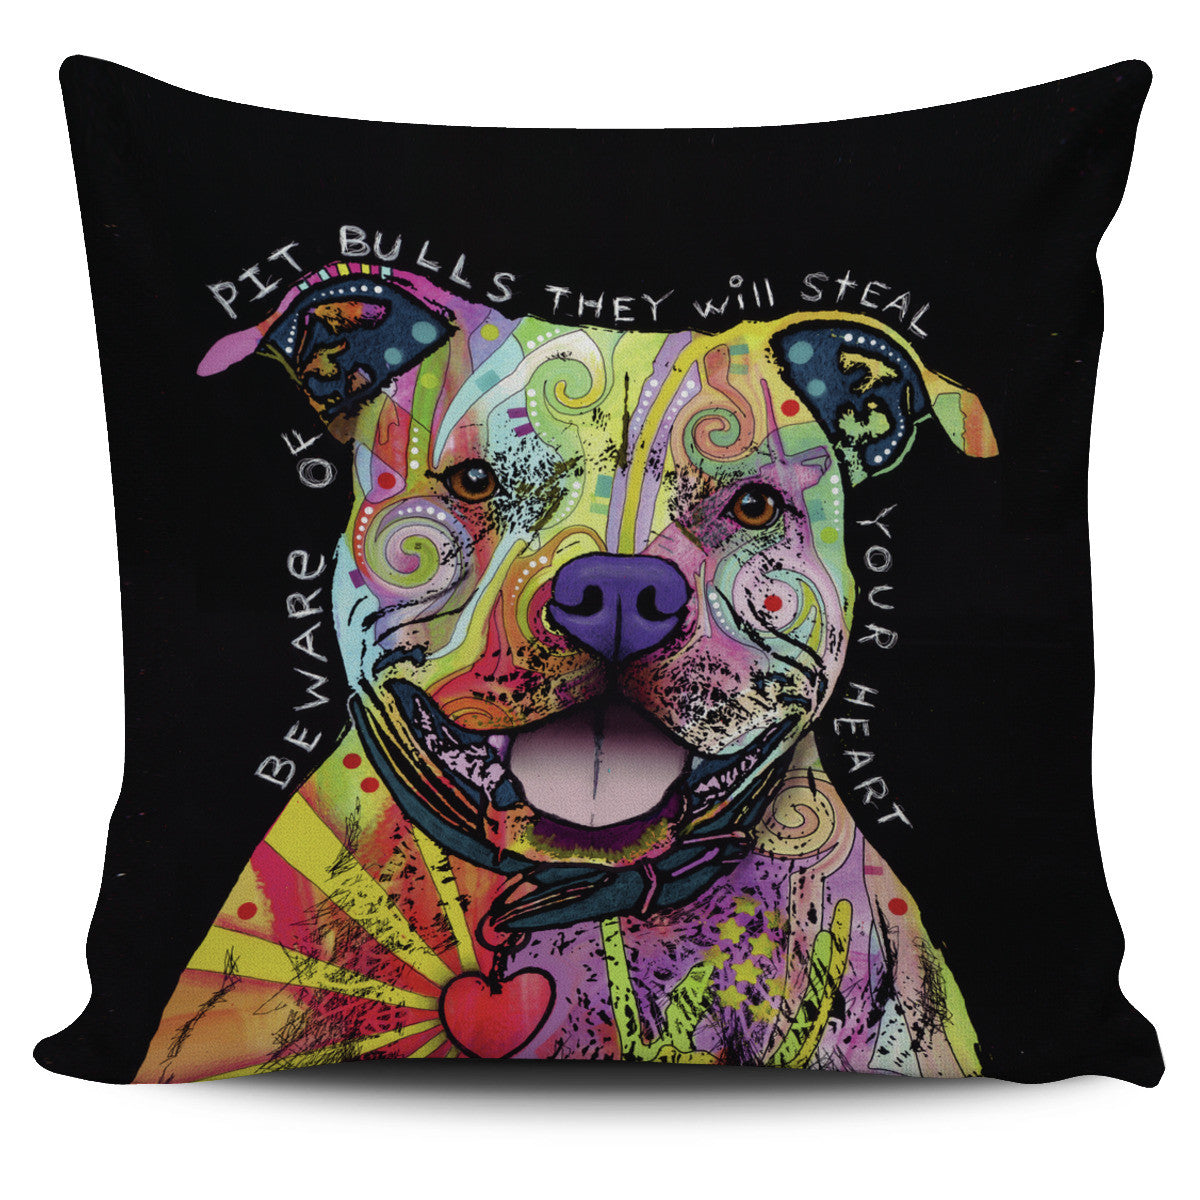 Pit Bull Pillow Covers